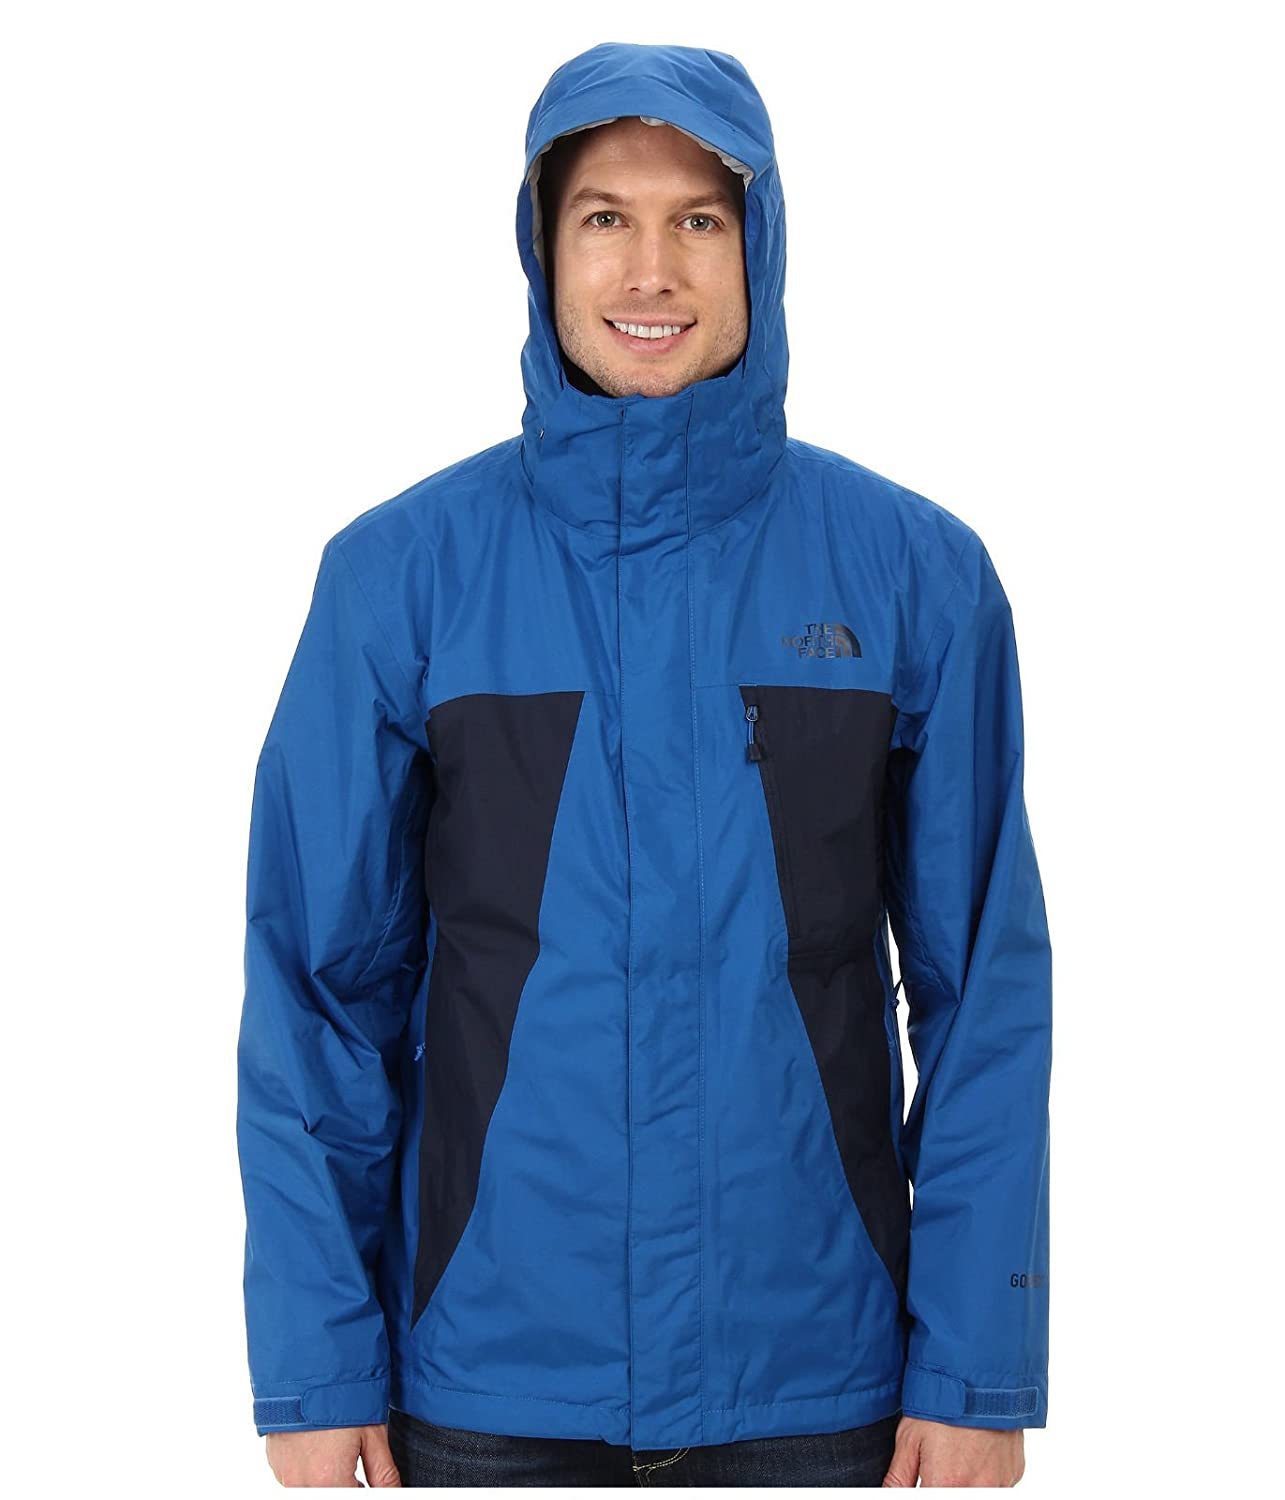 d4212a7d0 Amazon.com: The North Face Men's Mountain Light Jacket: Clothing